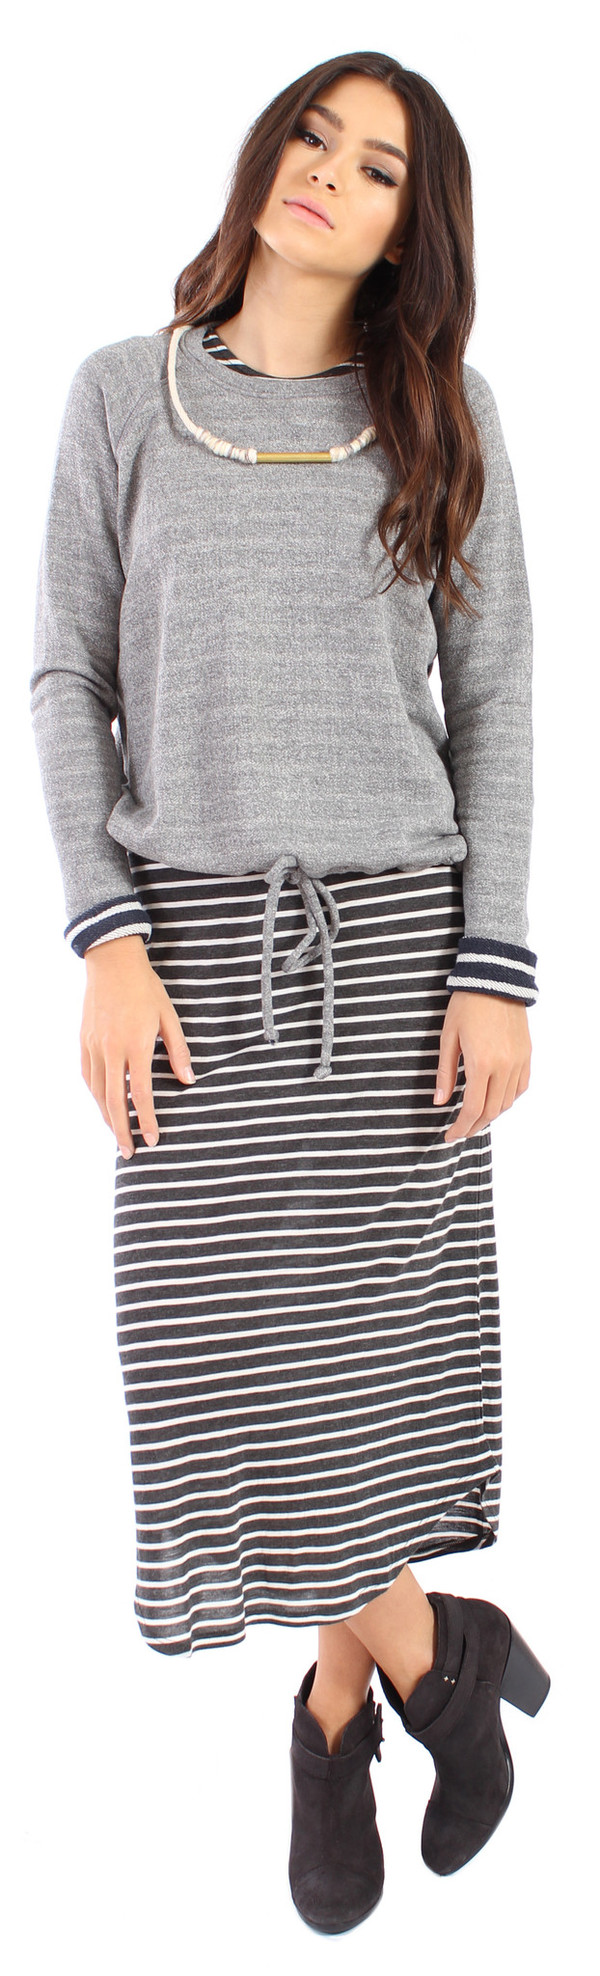 The Lady & The Sailor Ballet Drawstring